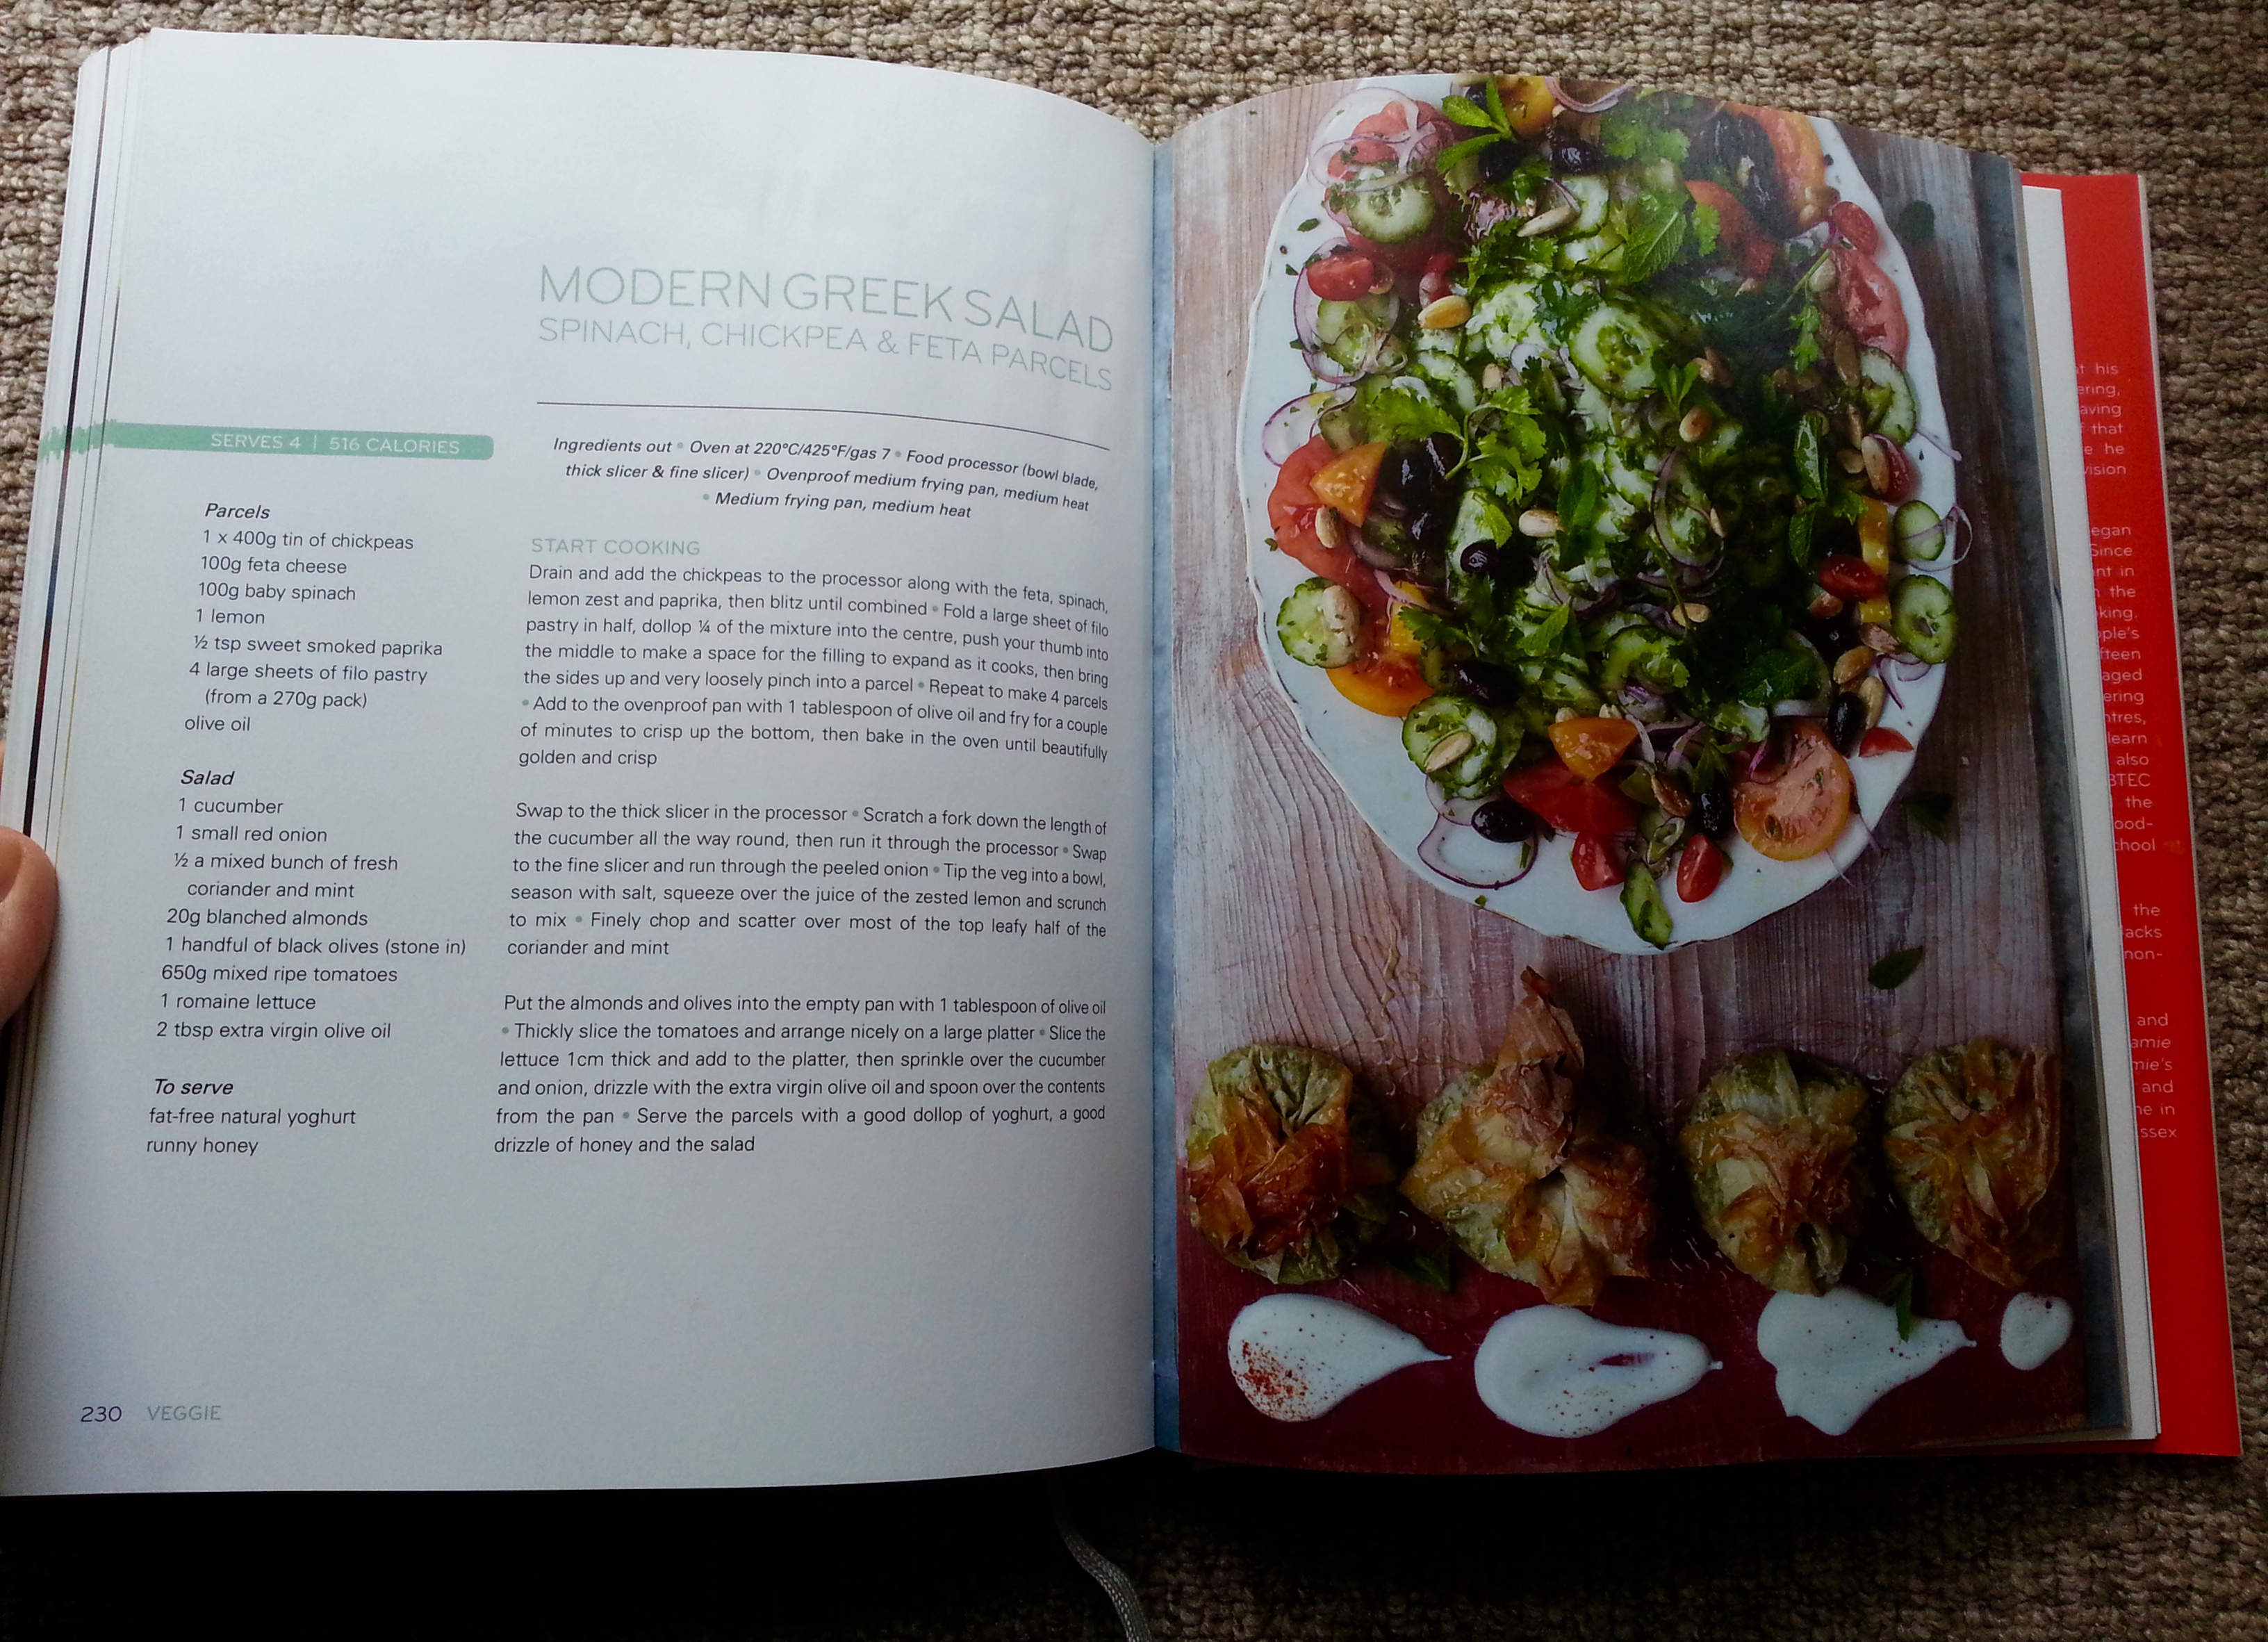 Jamies 15 minute meals book review everywhere jamies 15 minute meals jamie oliver recipe book greek salad forumfinder Image collections